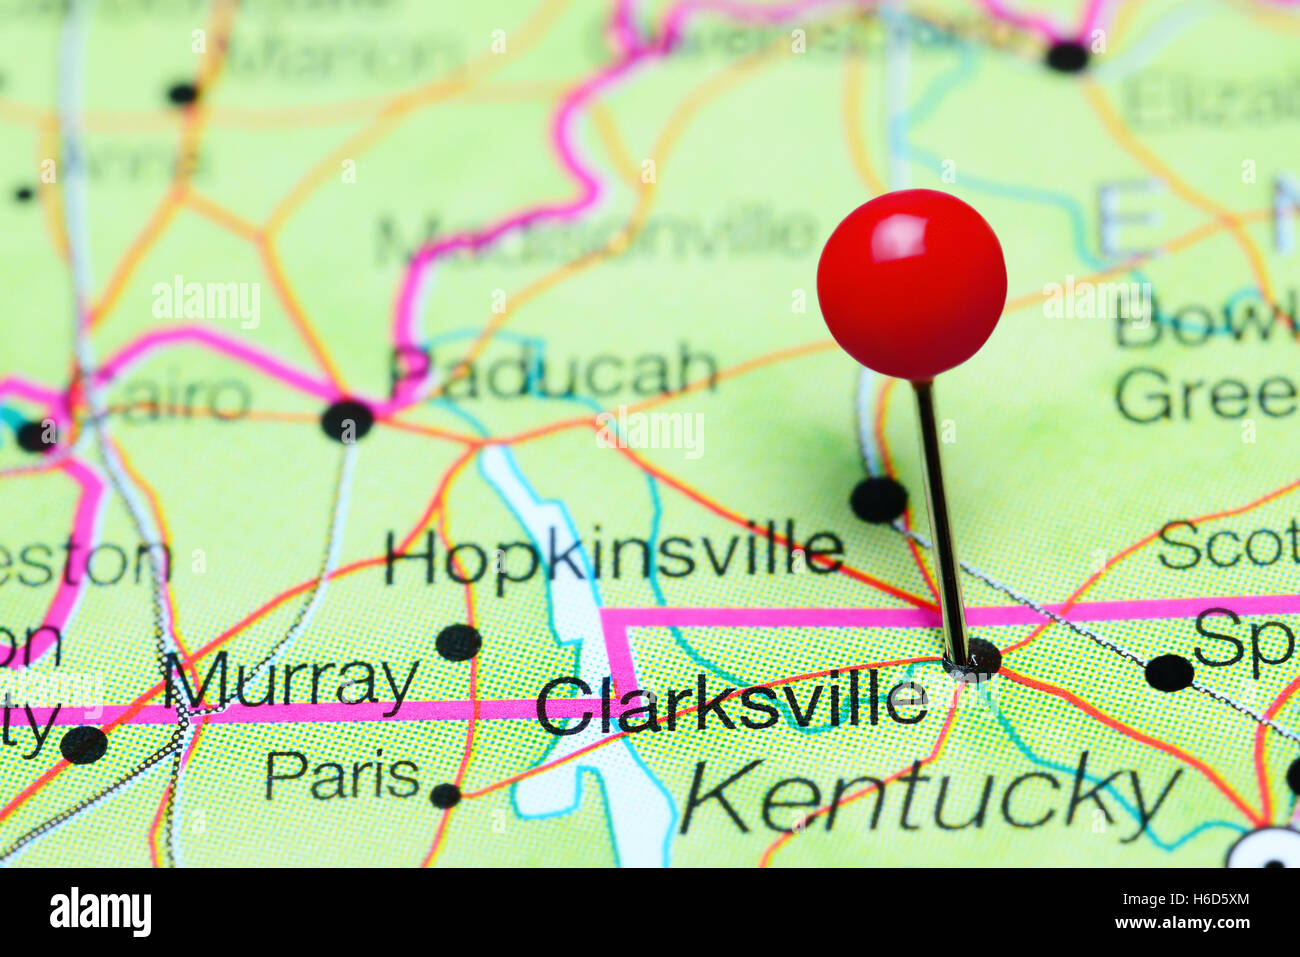 Clarksville pinned on a map of Tennessee, USA Stock Photo: 124450556 on map of grainger county tn, map of berry hill tn, map of tennessee, map of frayser tn, all map of tn, map of lobelville tn, map of petersburg tn, map of fall branch tn, map of johnsonville tn, map of millersville tn, map of clarkrange tn, map of pleasant view tn, map of arrington tn, map of adams tn, map of jefferson co tn, map of ridgetop tn, map of tallassee tn, map of madison co tn, map of rivergate tn, map of mountain home tn,